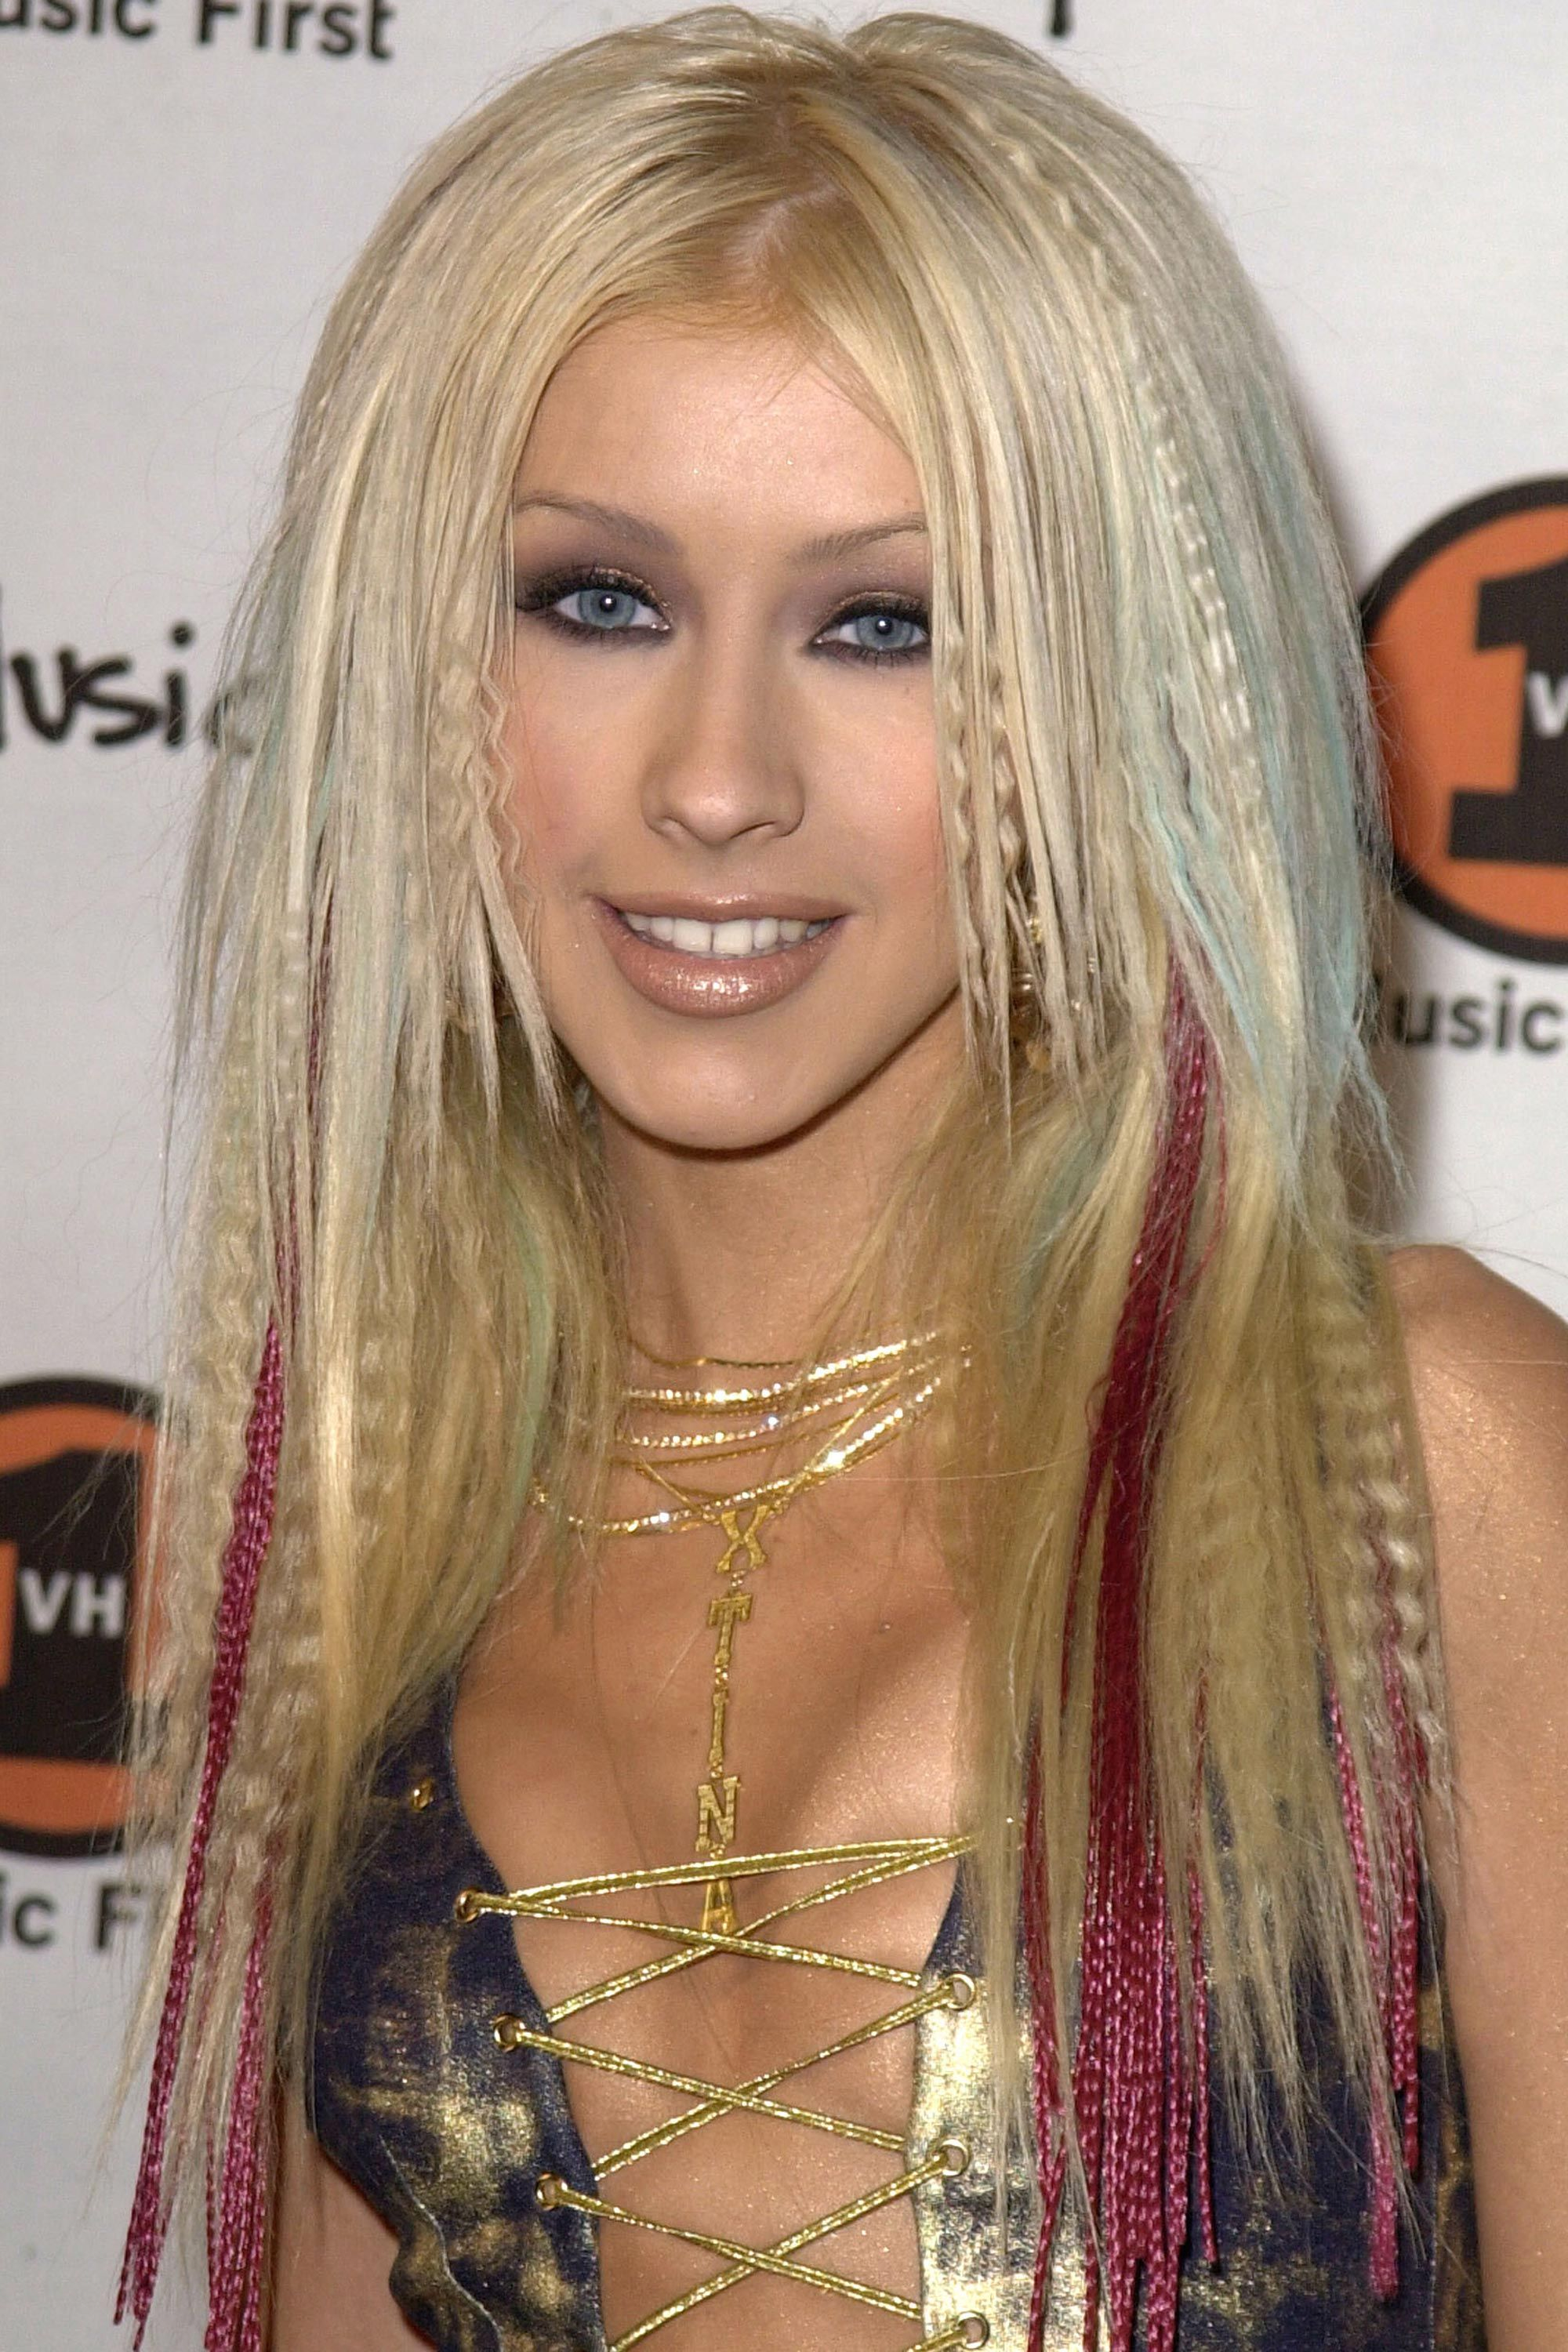 24 Early 2000s Beauty Looks You Forgot Were Obsessed With ...